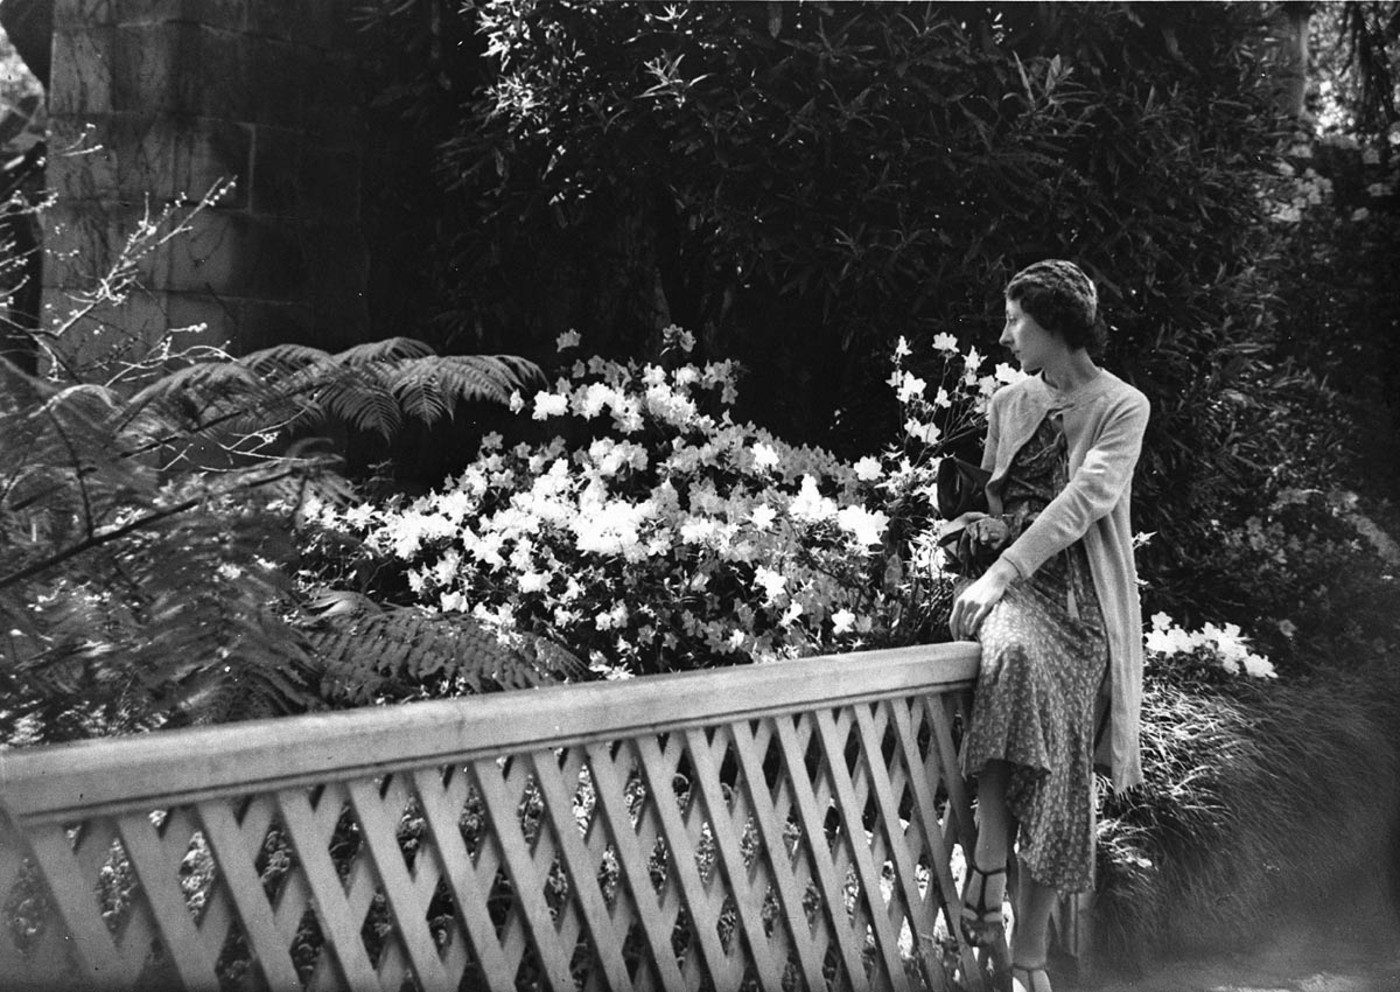 A woman in the Botanic Gardens, 13 Sept. 1934, by Sam Hood